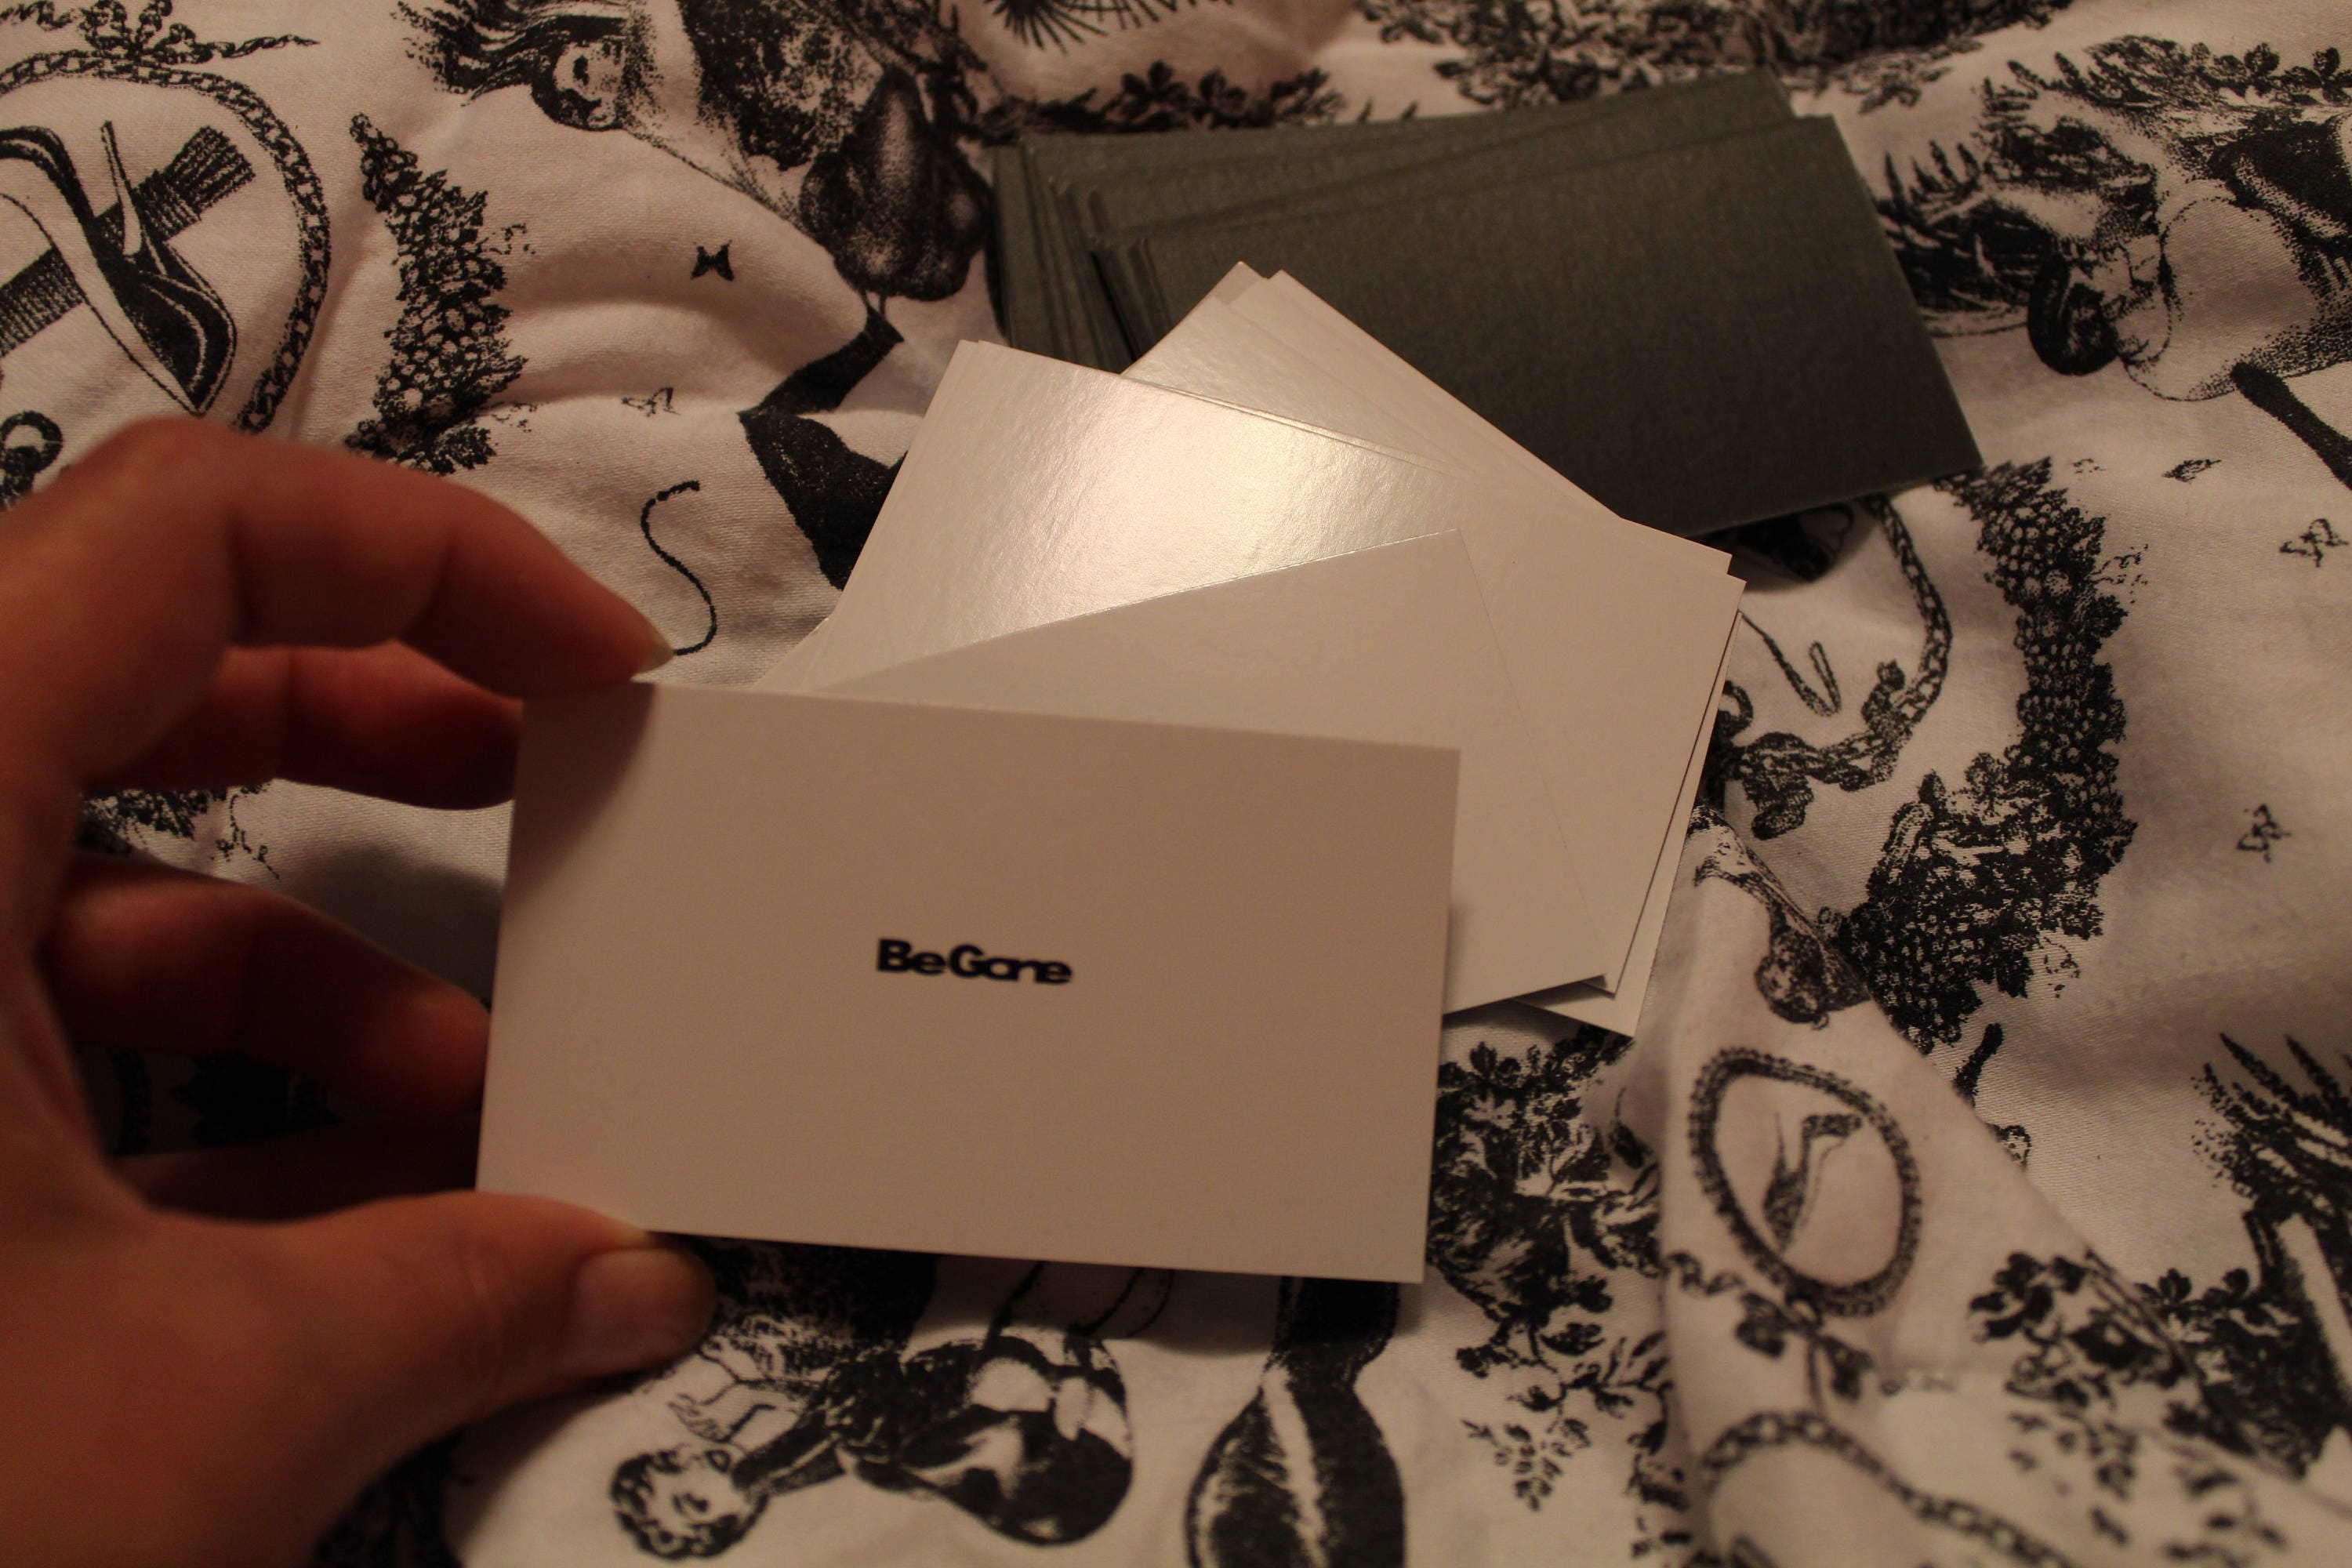 BE GONE - Gag Business card set - 25 Standard sized cards from ...